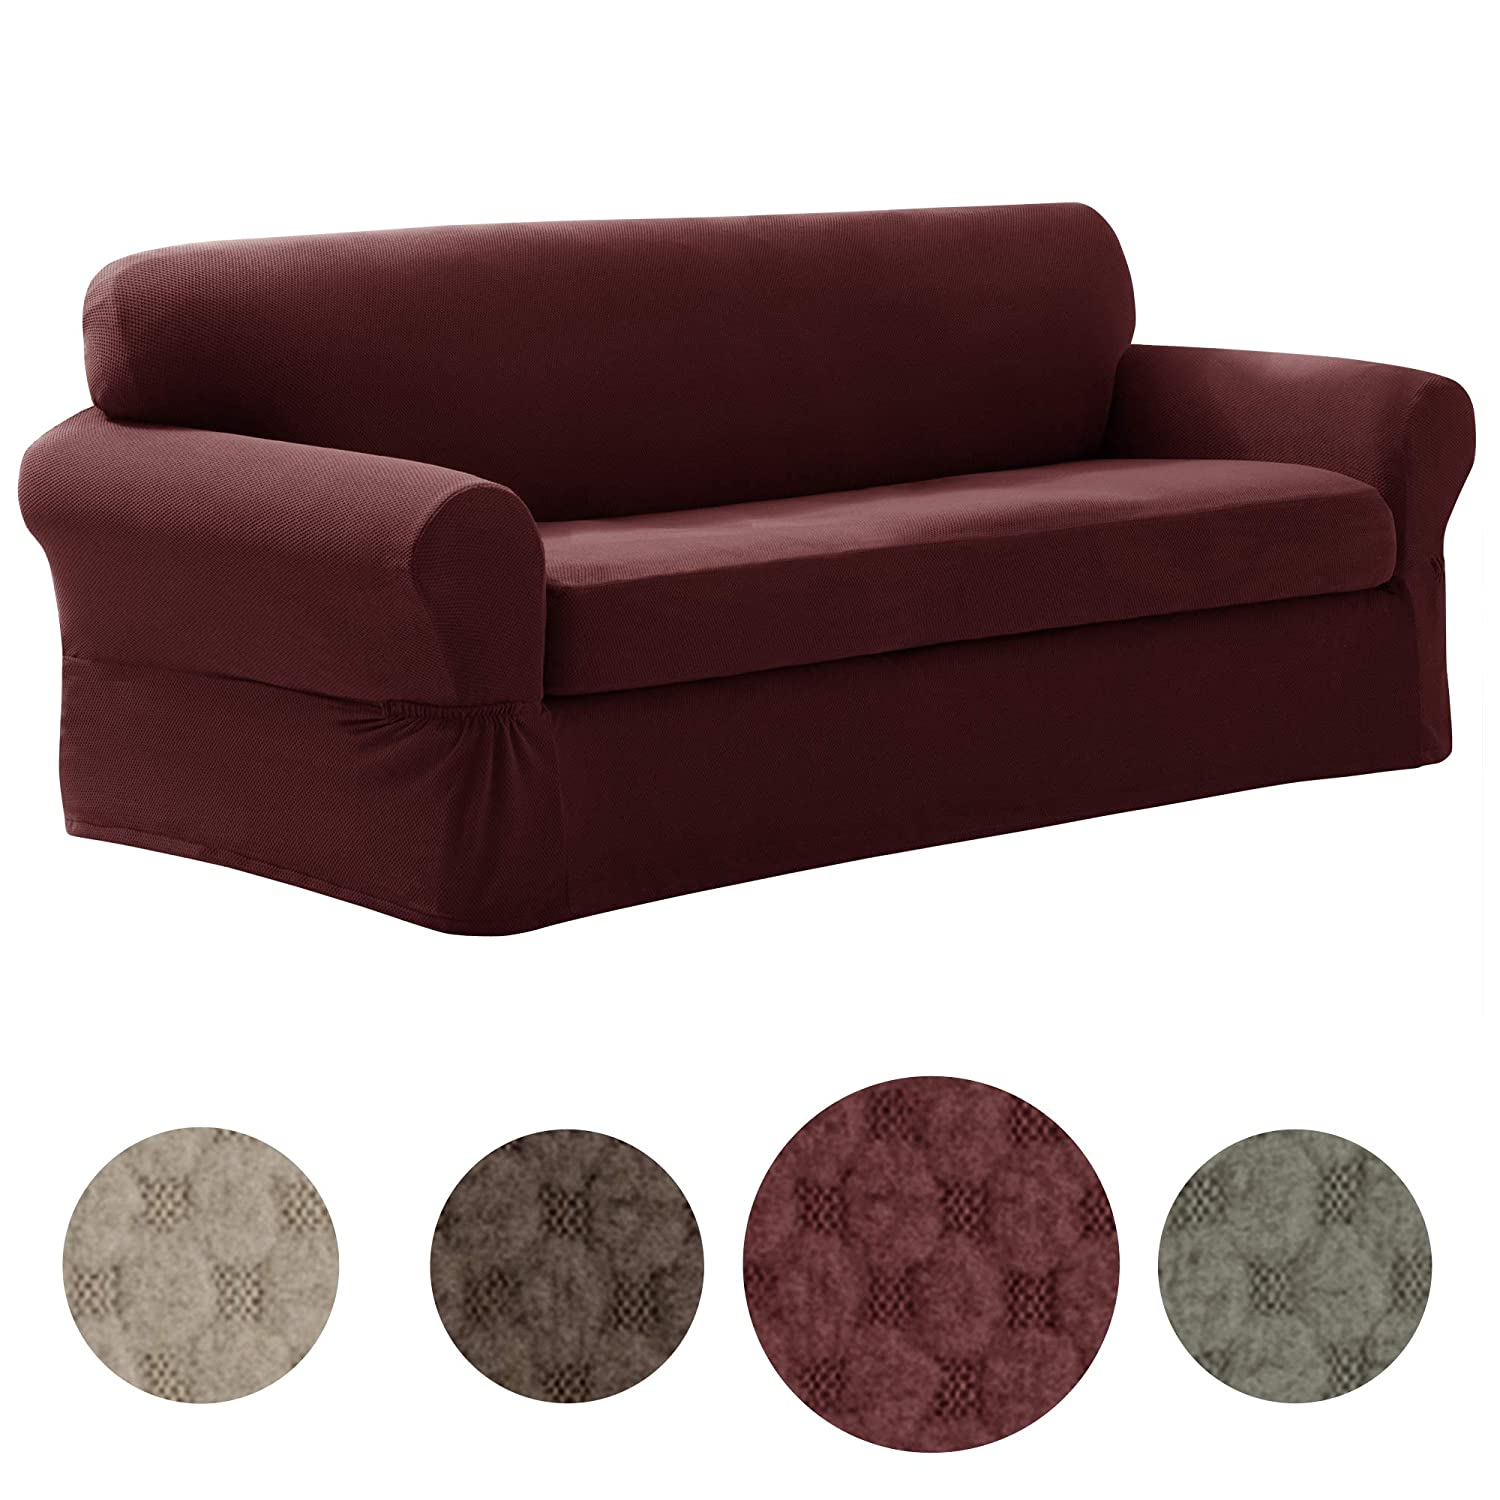 MAYTEX Pixel Ultra Soft Stretch 2 Piece Sofa Furniture Cover Slipcover, Wine Red